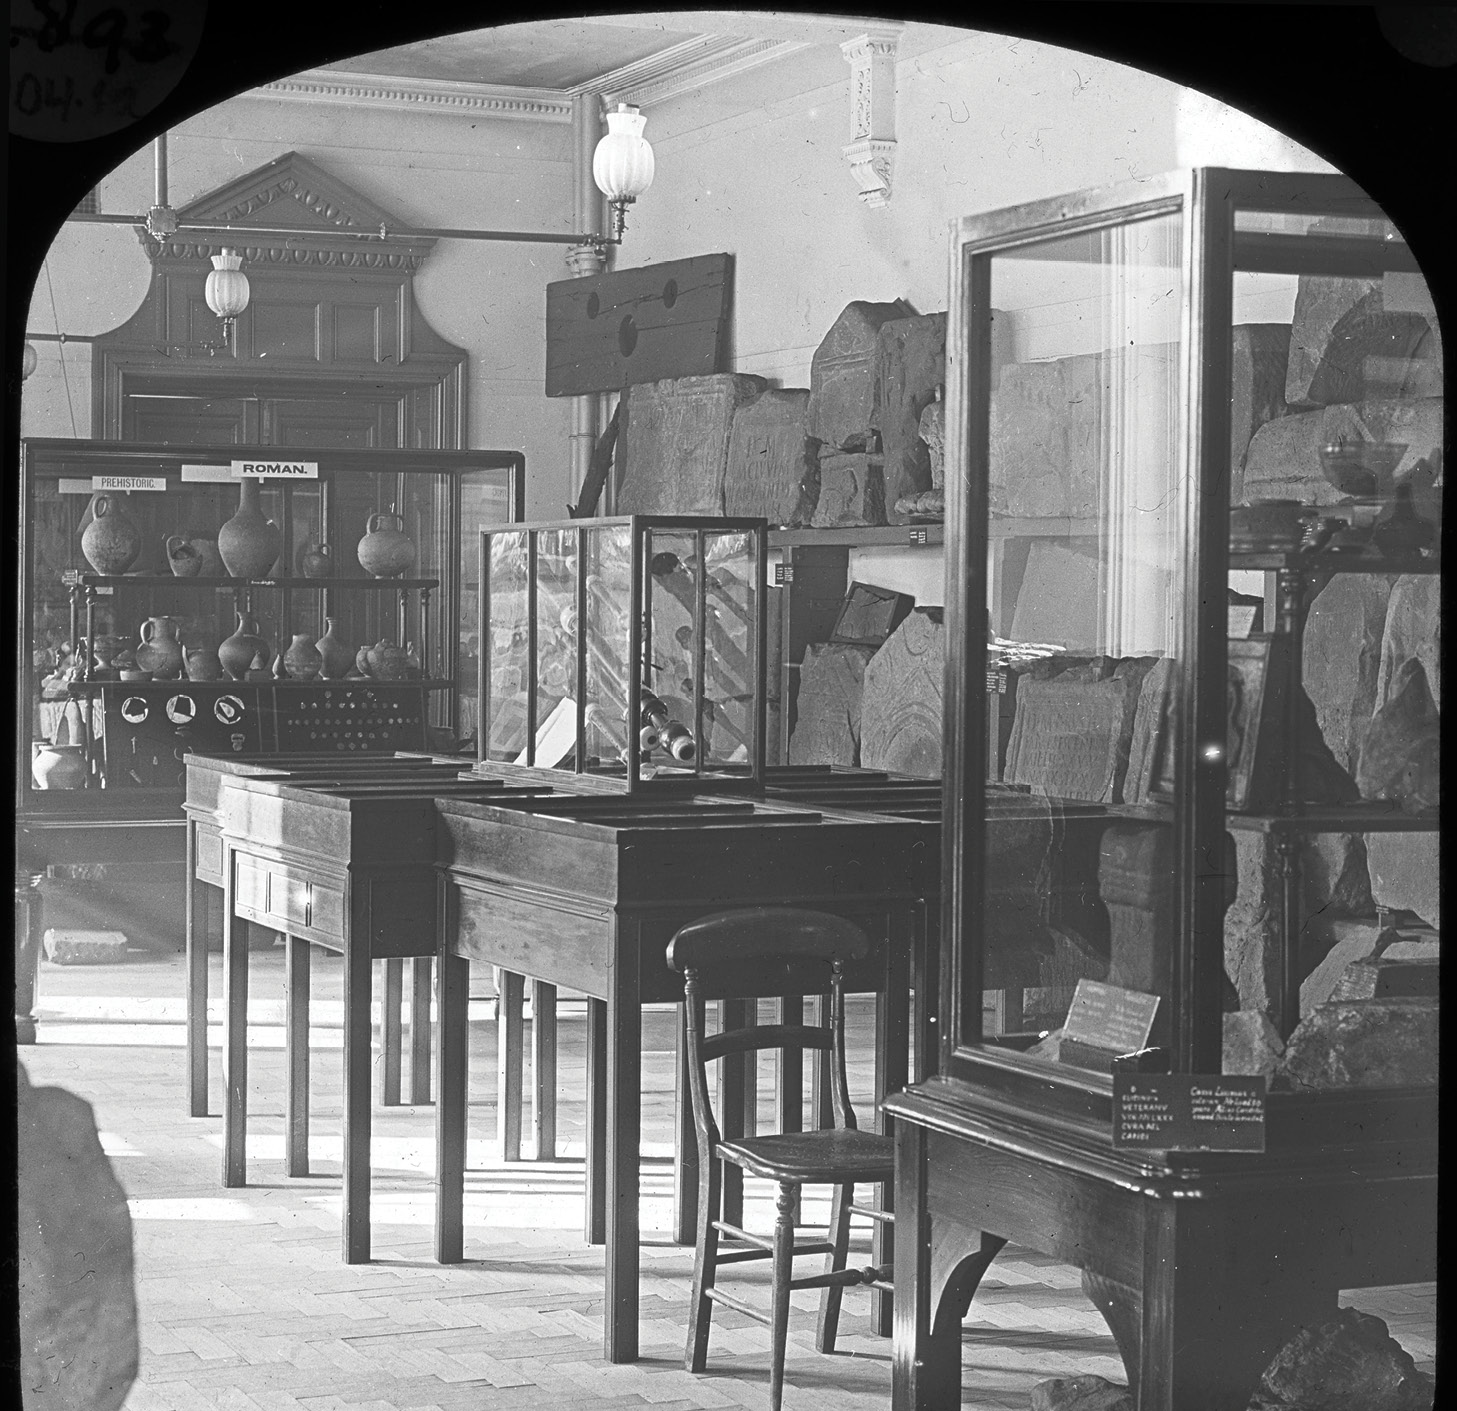 left Roman artefacts on display at the Chester Museum, late 19th or early 20th century (HEIR ID 59688). The photographer is unknown, but the image offers interesting insights into how exhibits like these were presented it seems that there was an expectation of prior knowledge on the part of visitors.